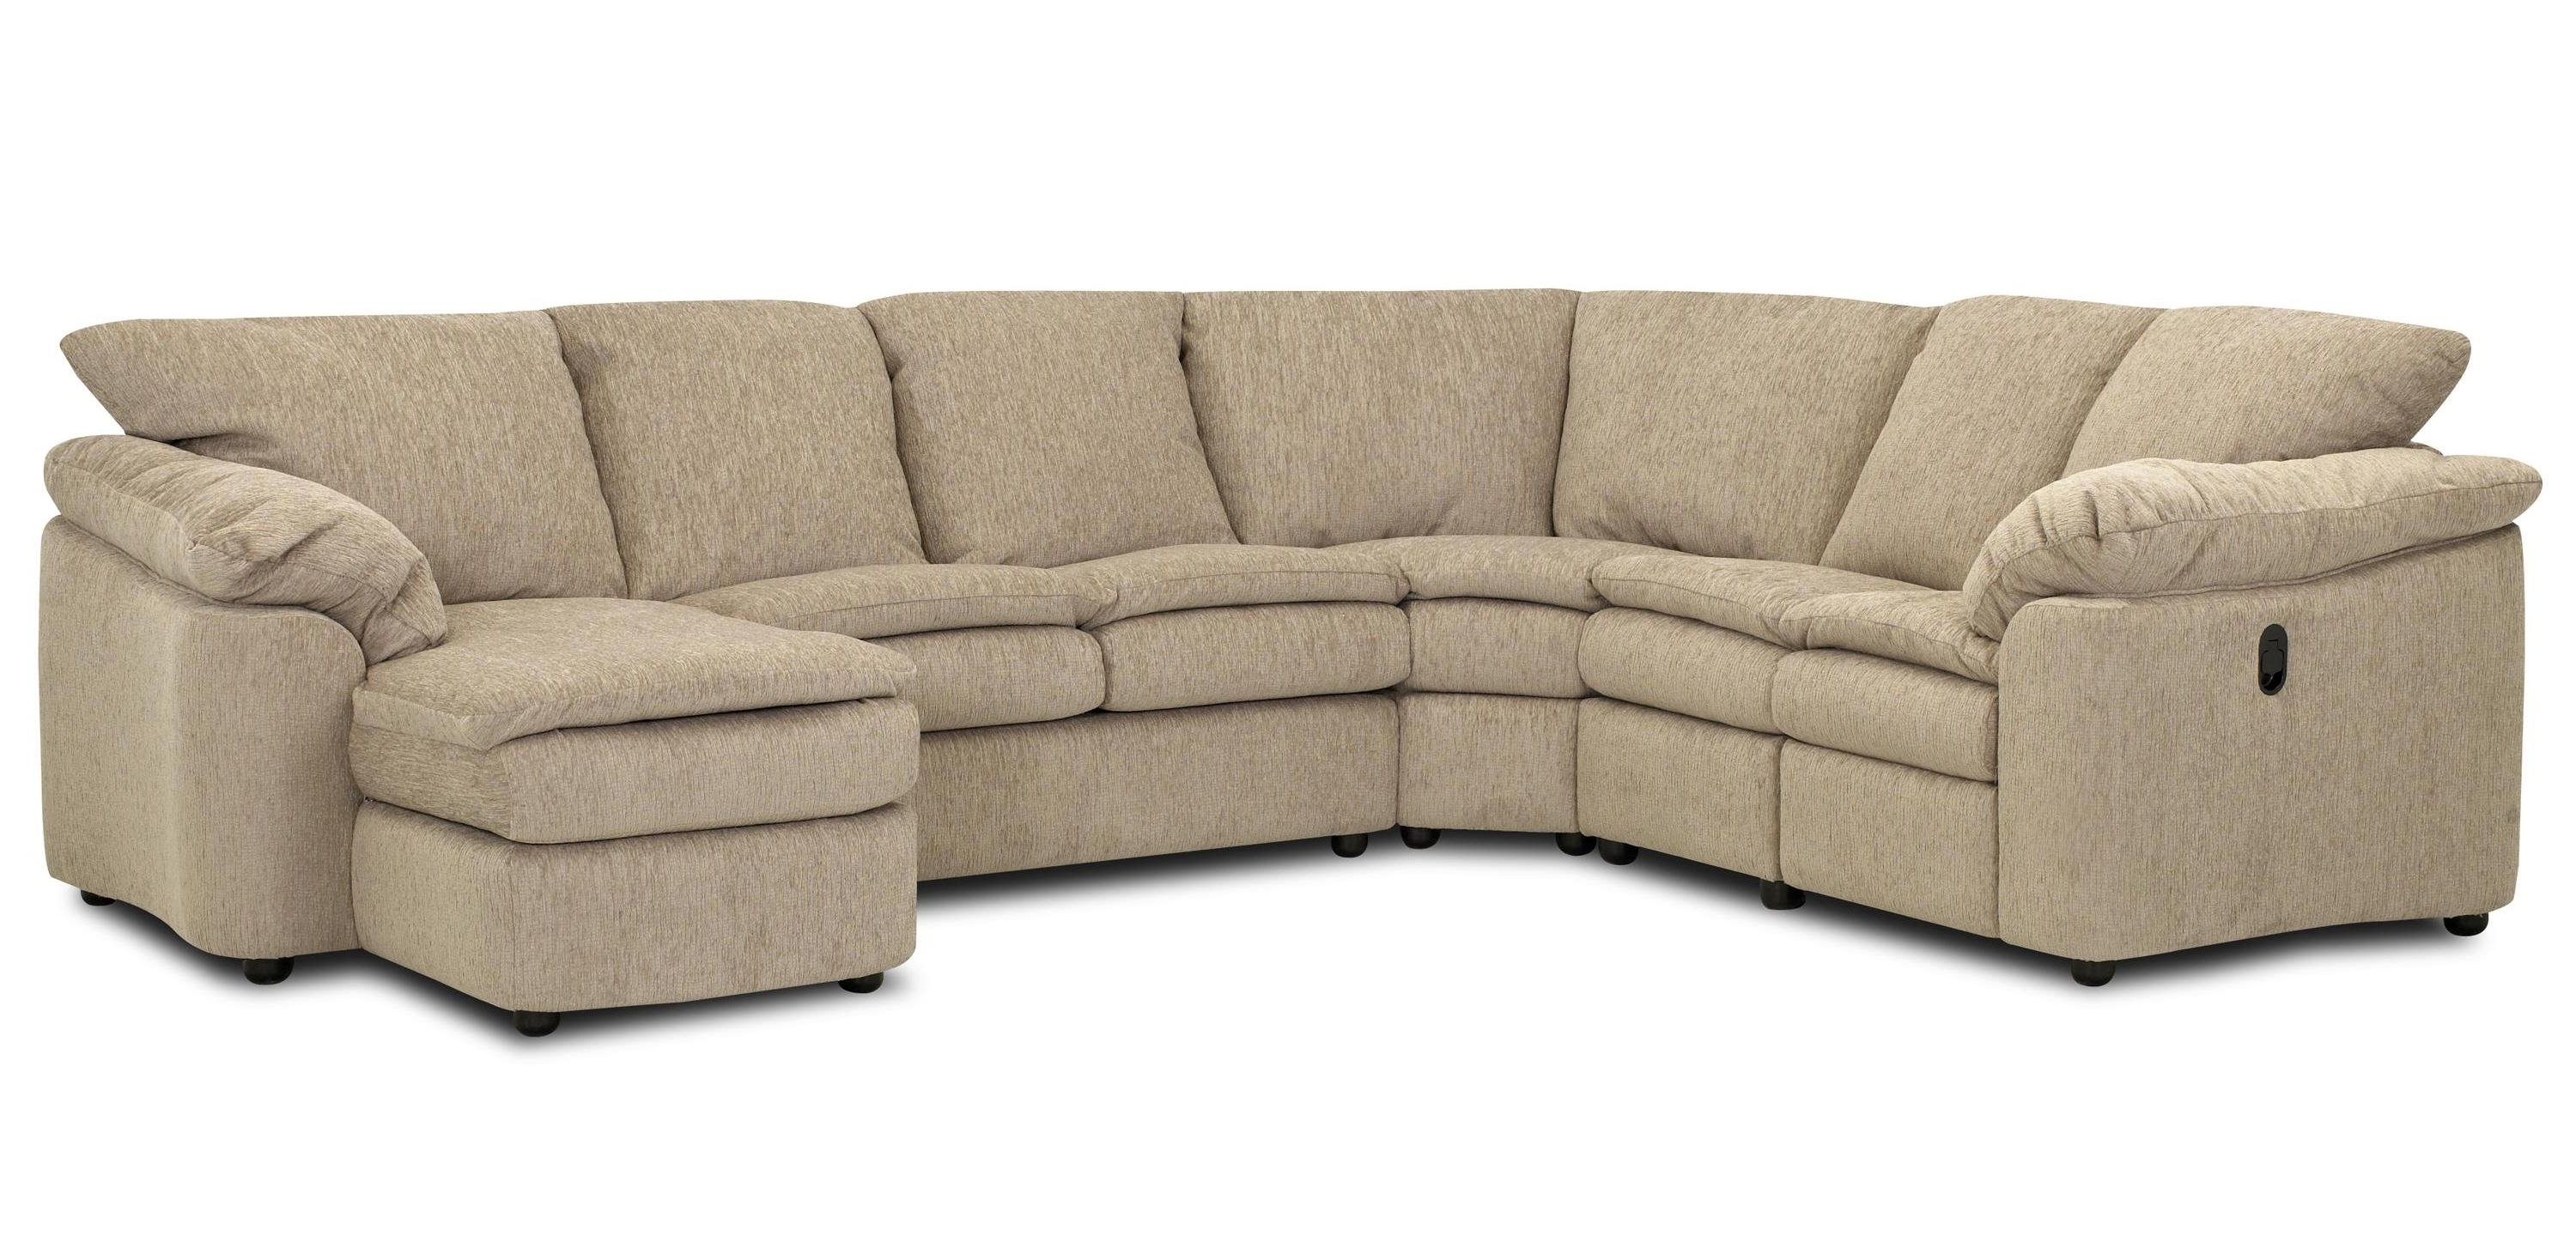 Current Loveseats With Chaise With Klaussner Legacy Dual Reclining Left Arm Loveseat, Sleeper And (View 6 of 15)